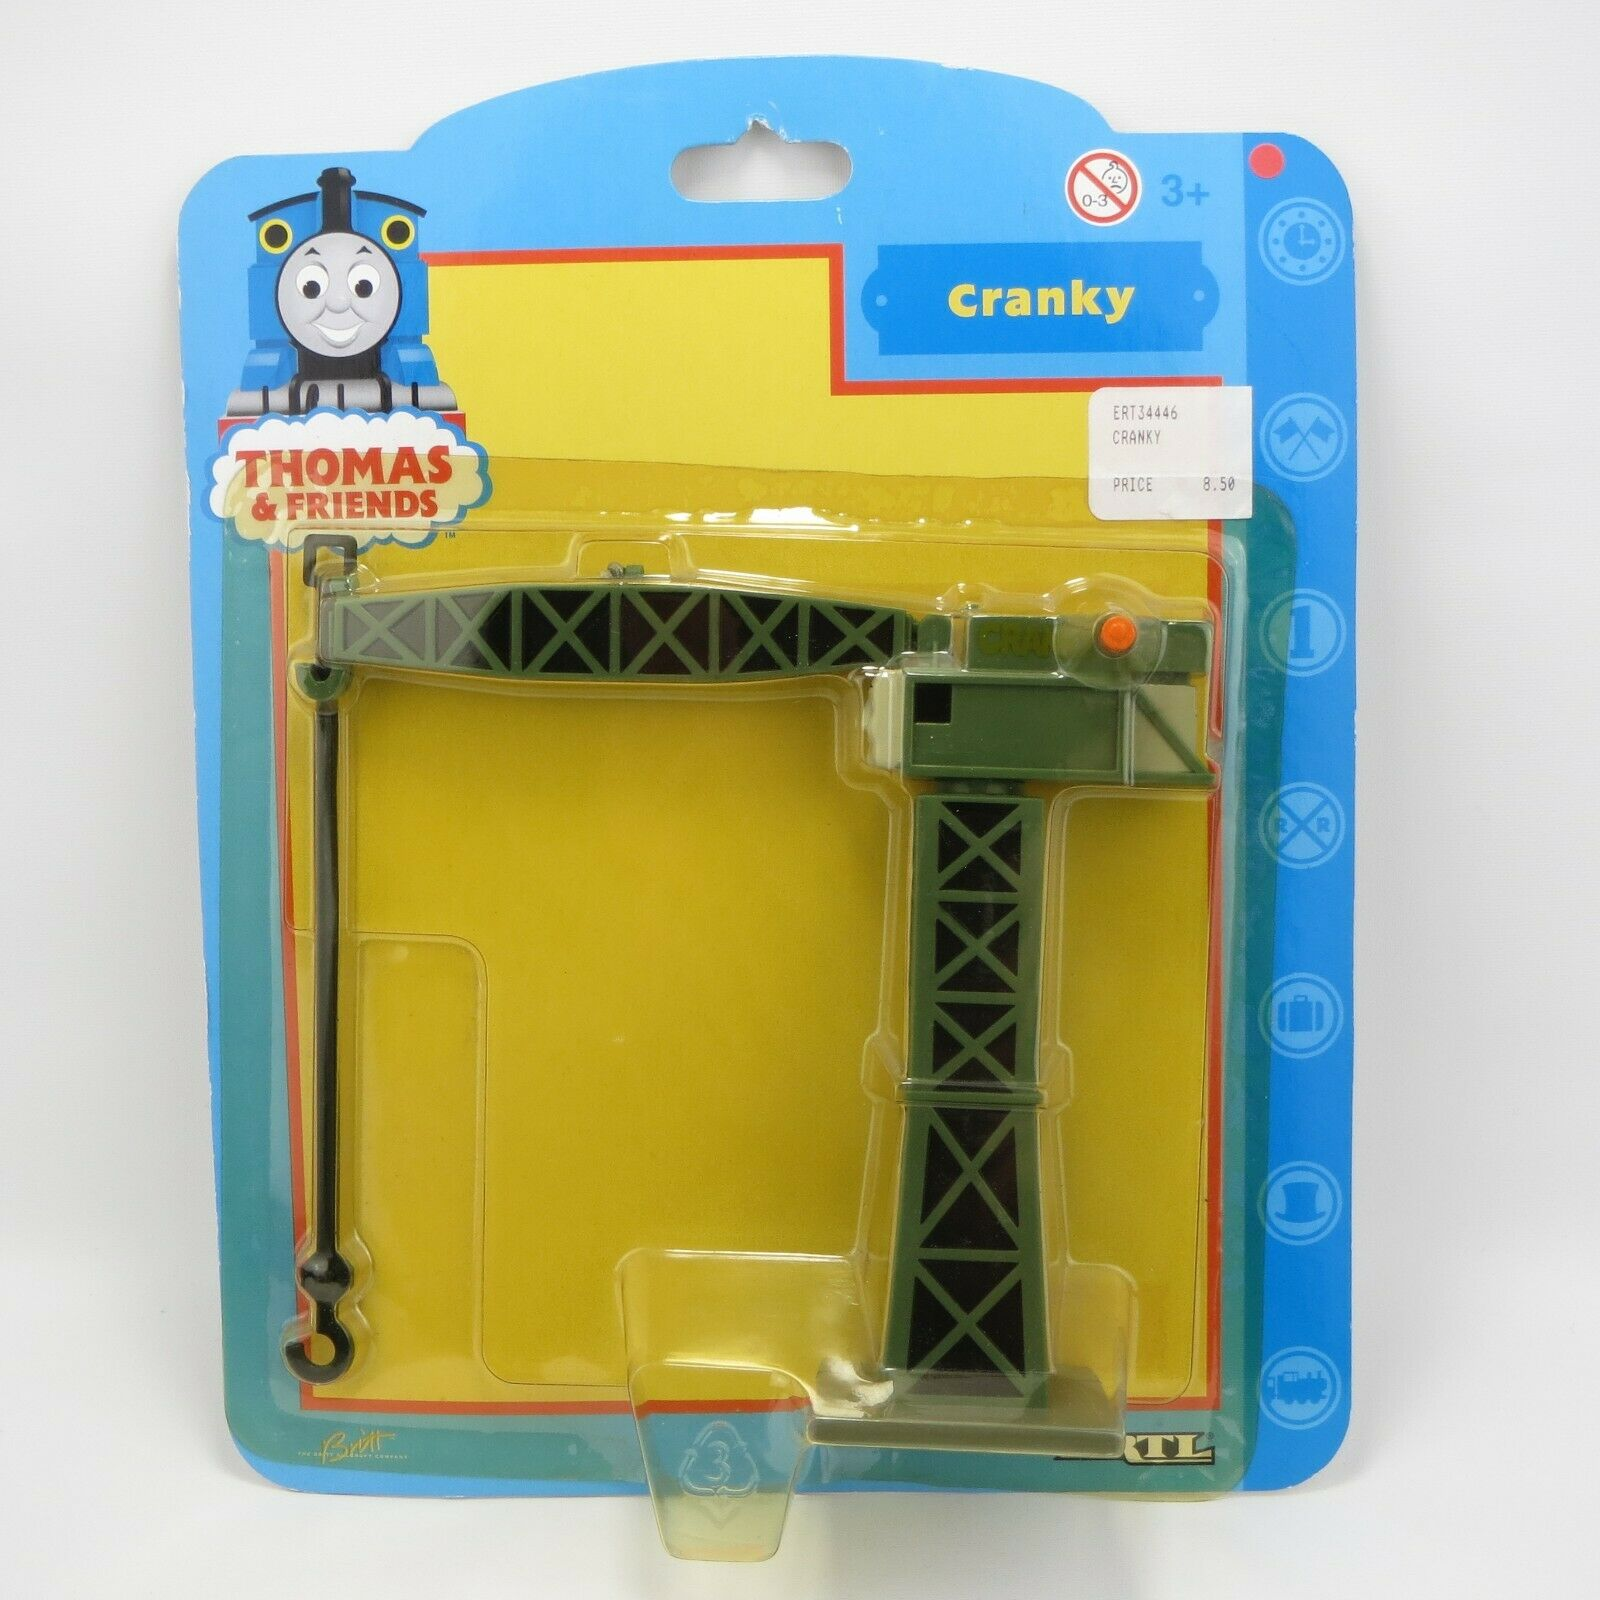 CRANKY THE CRANE - THOMAS & FRIENDS - VINTAGE 2000 ERTL DIE-CAST TRAIN ACCESSORY